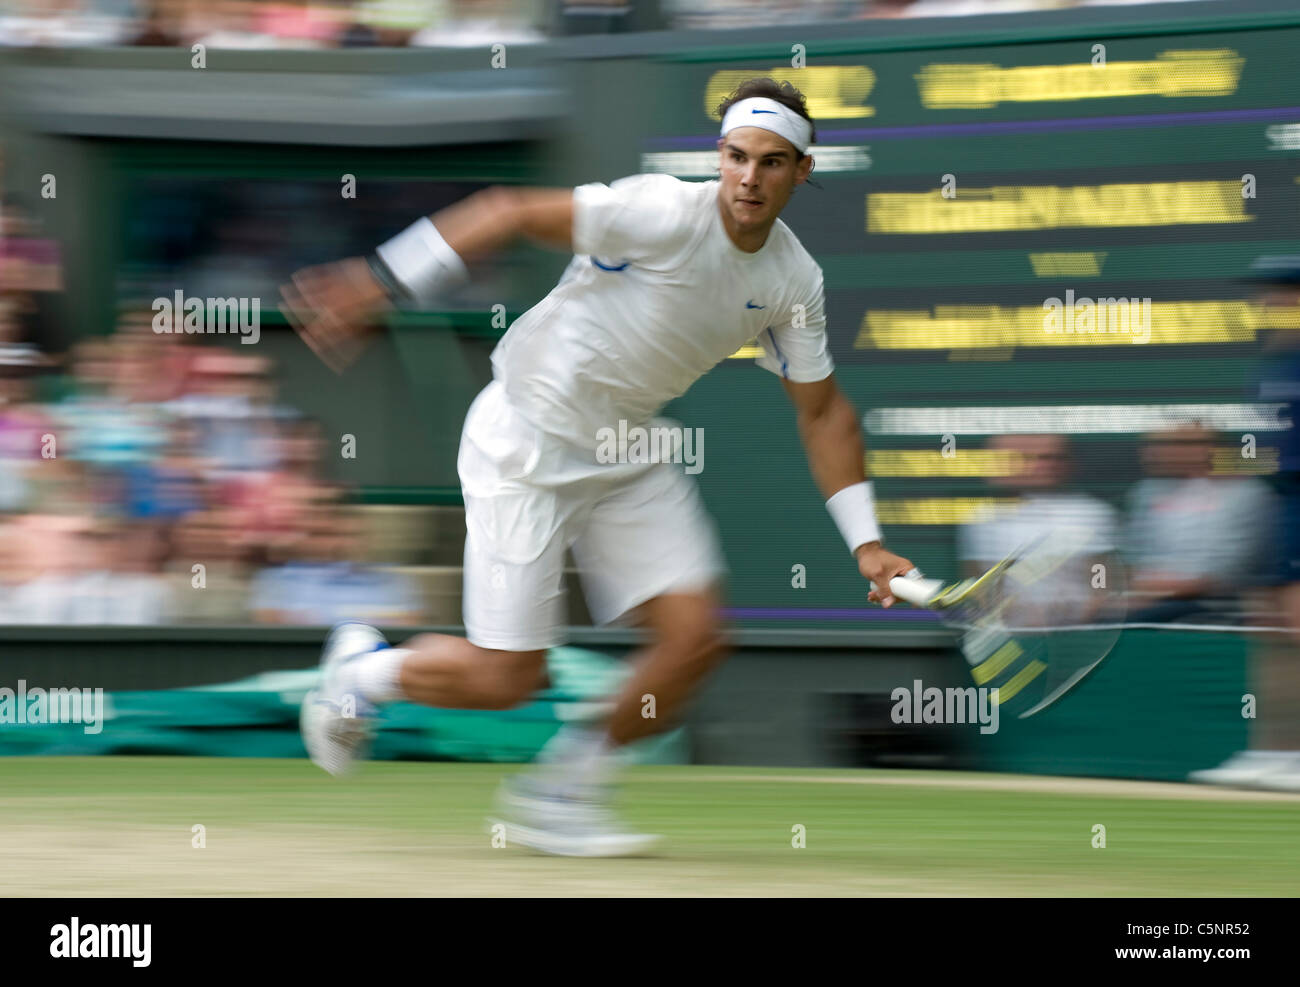 Effect of Rafael Nadal (ESP) running across the court during the Wimbledon Tennis Championships 2011 - Stock Image